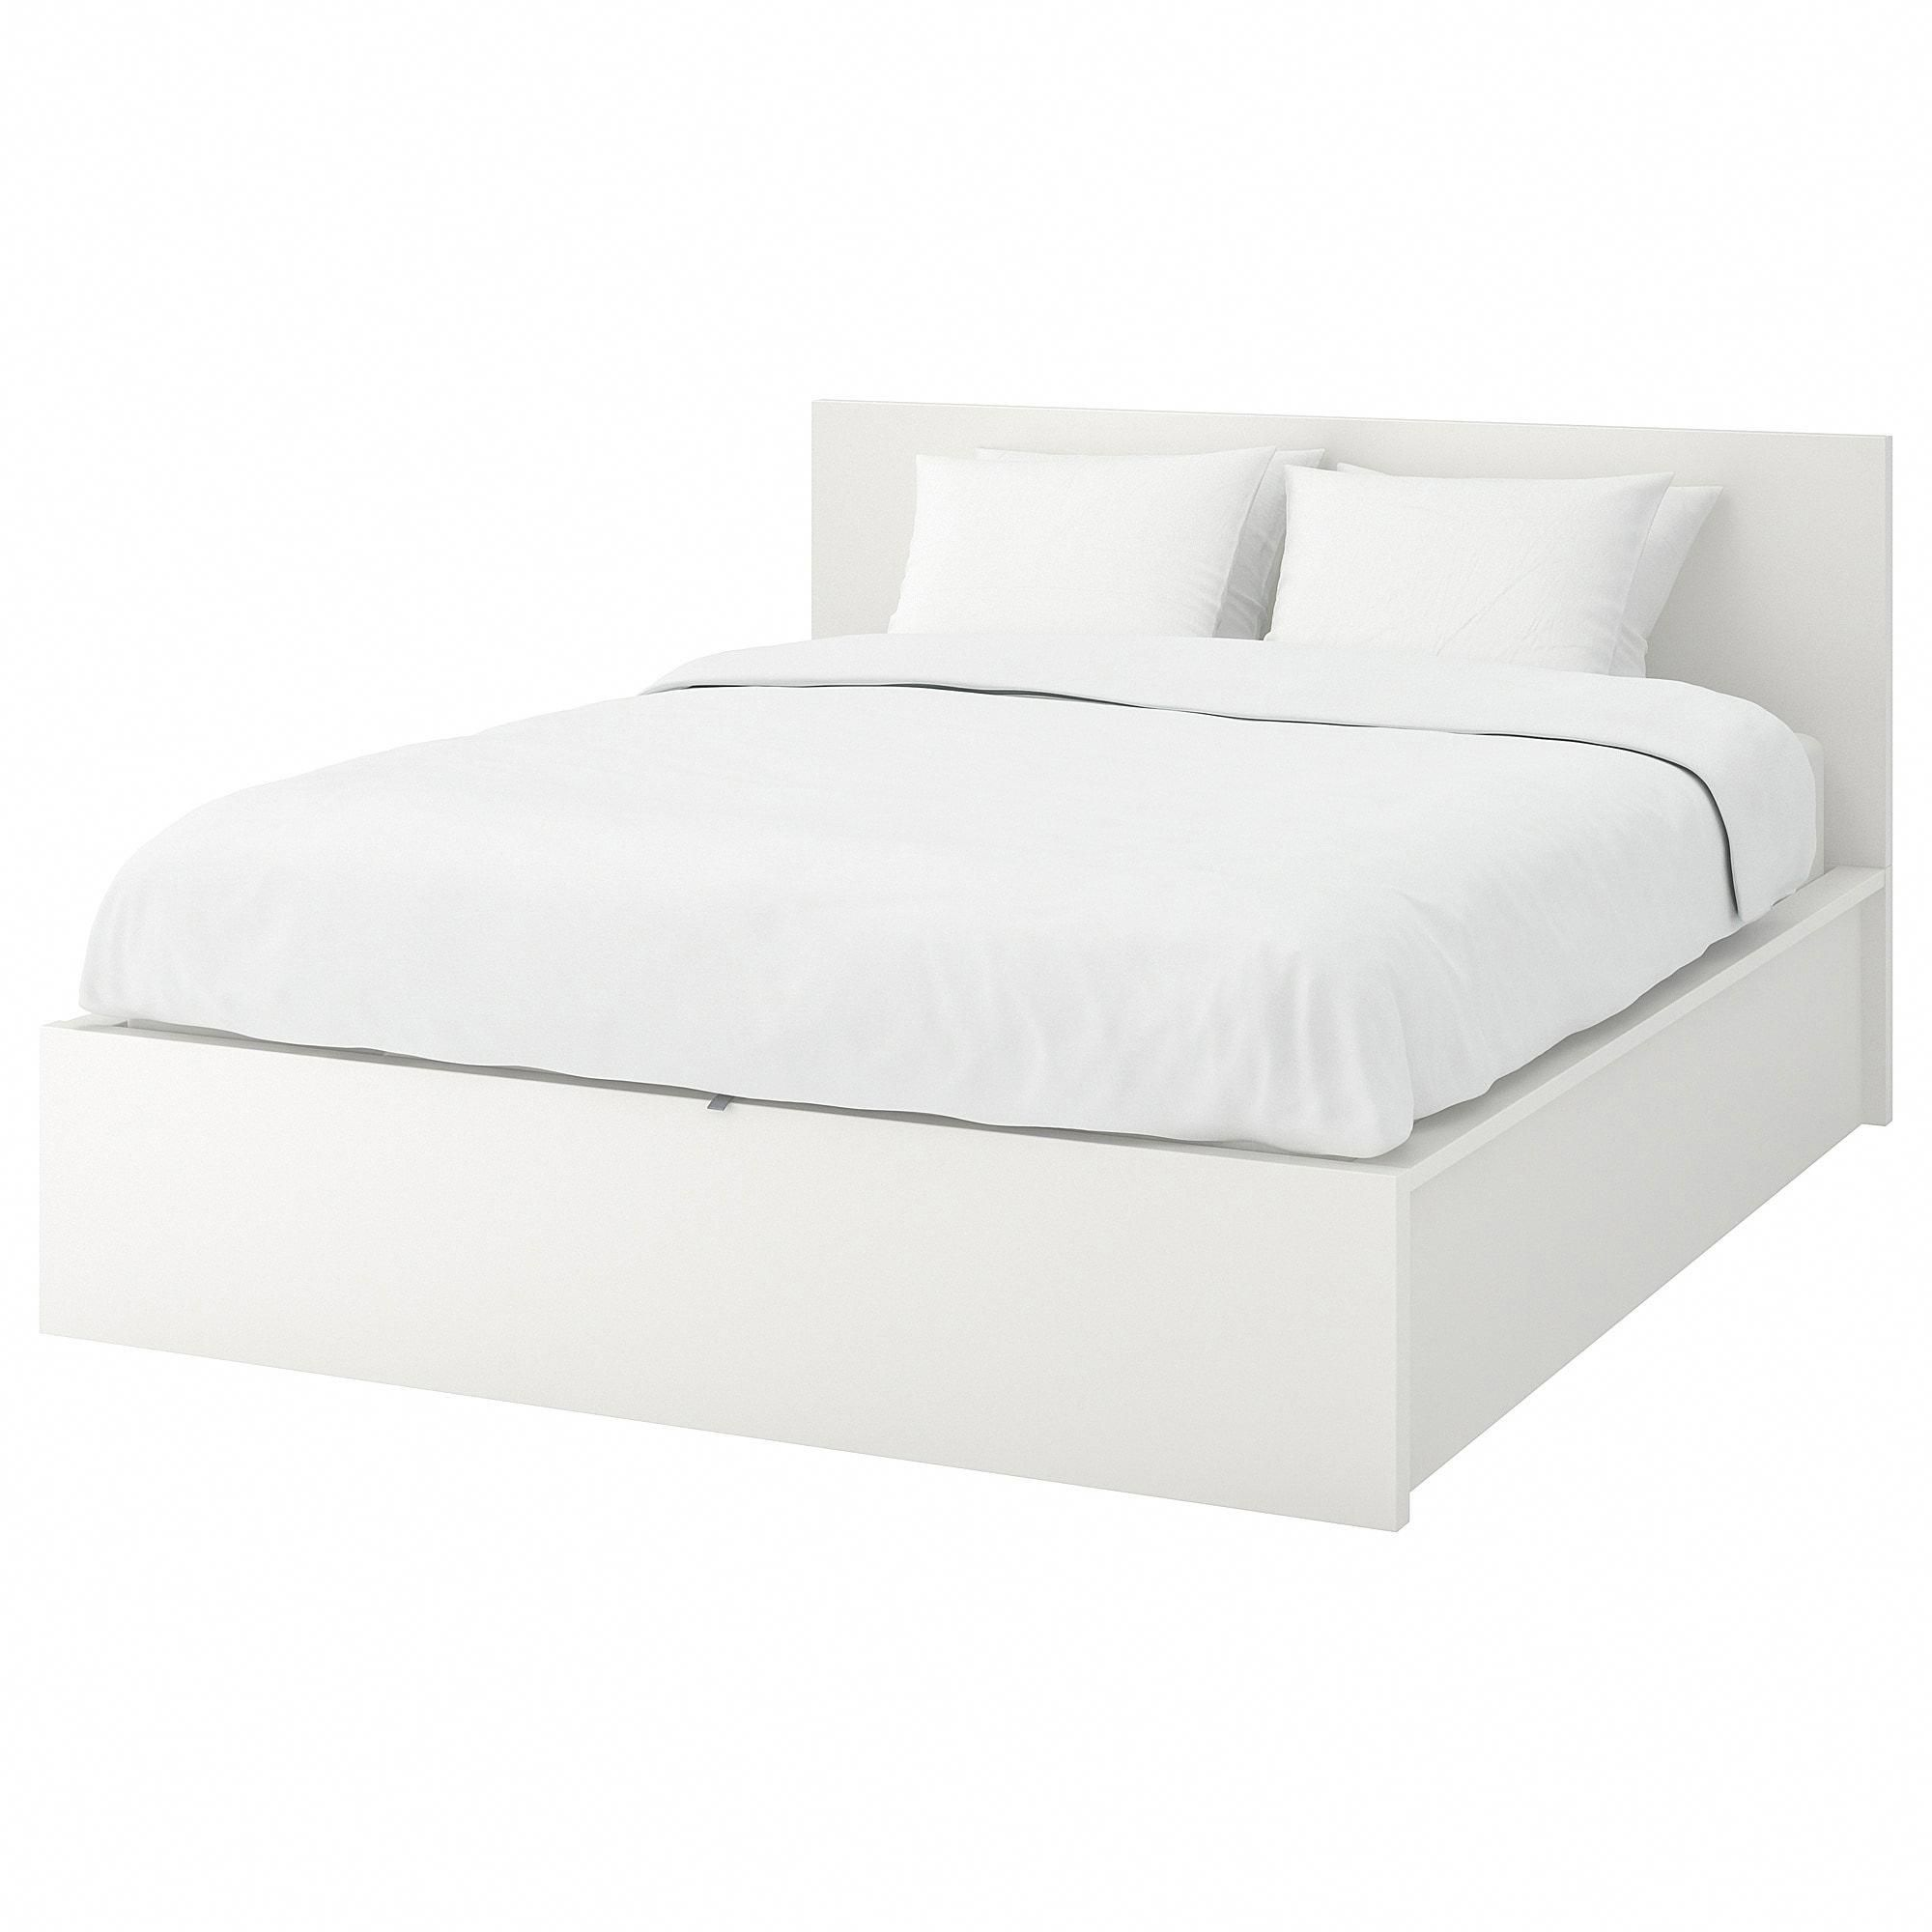 Malm Storage Bed White Full Double Ikea Ikeabedroomideas